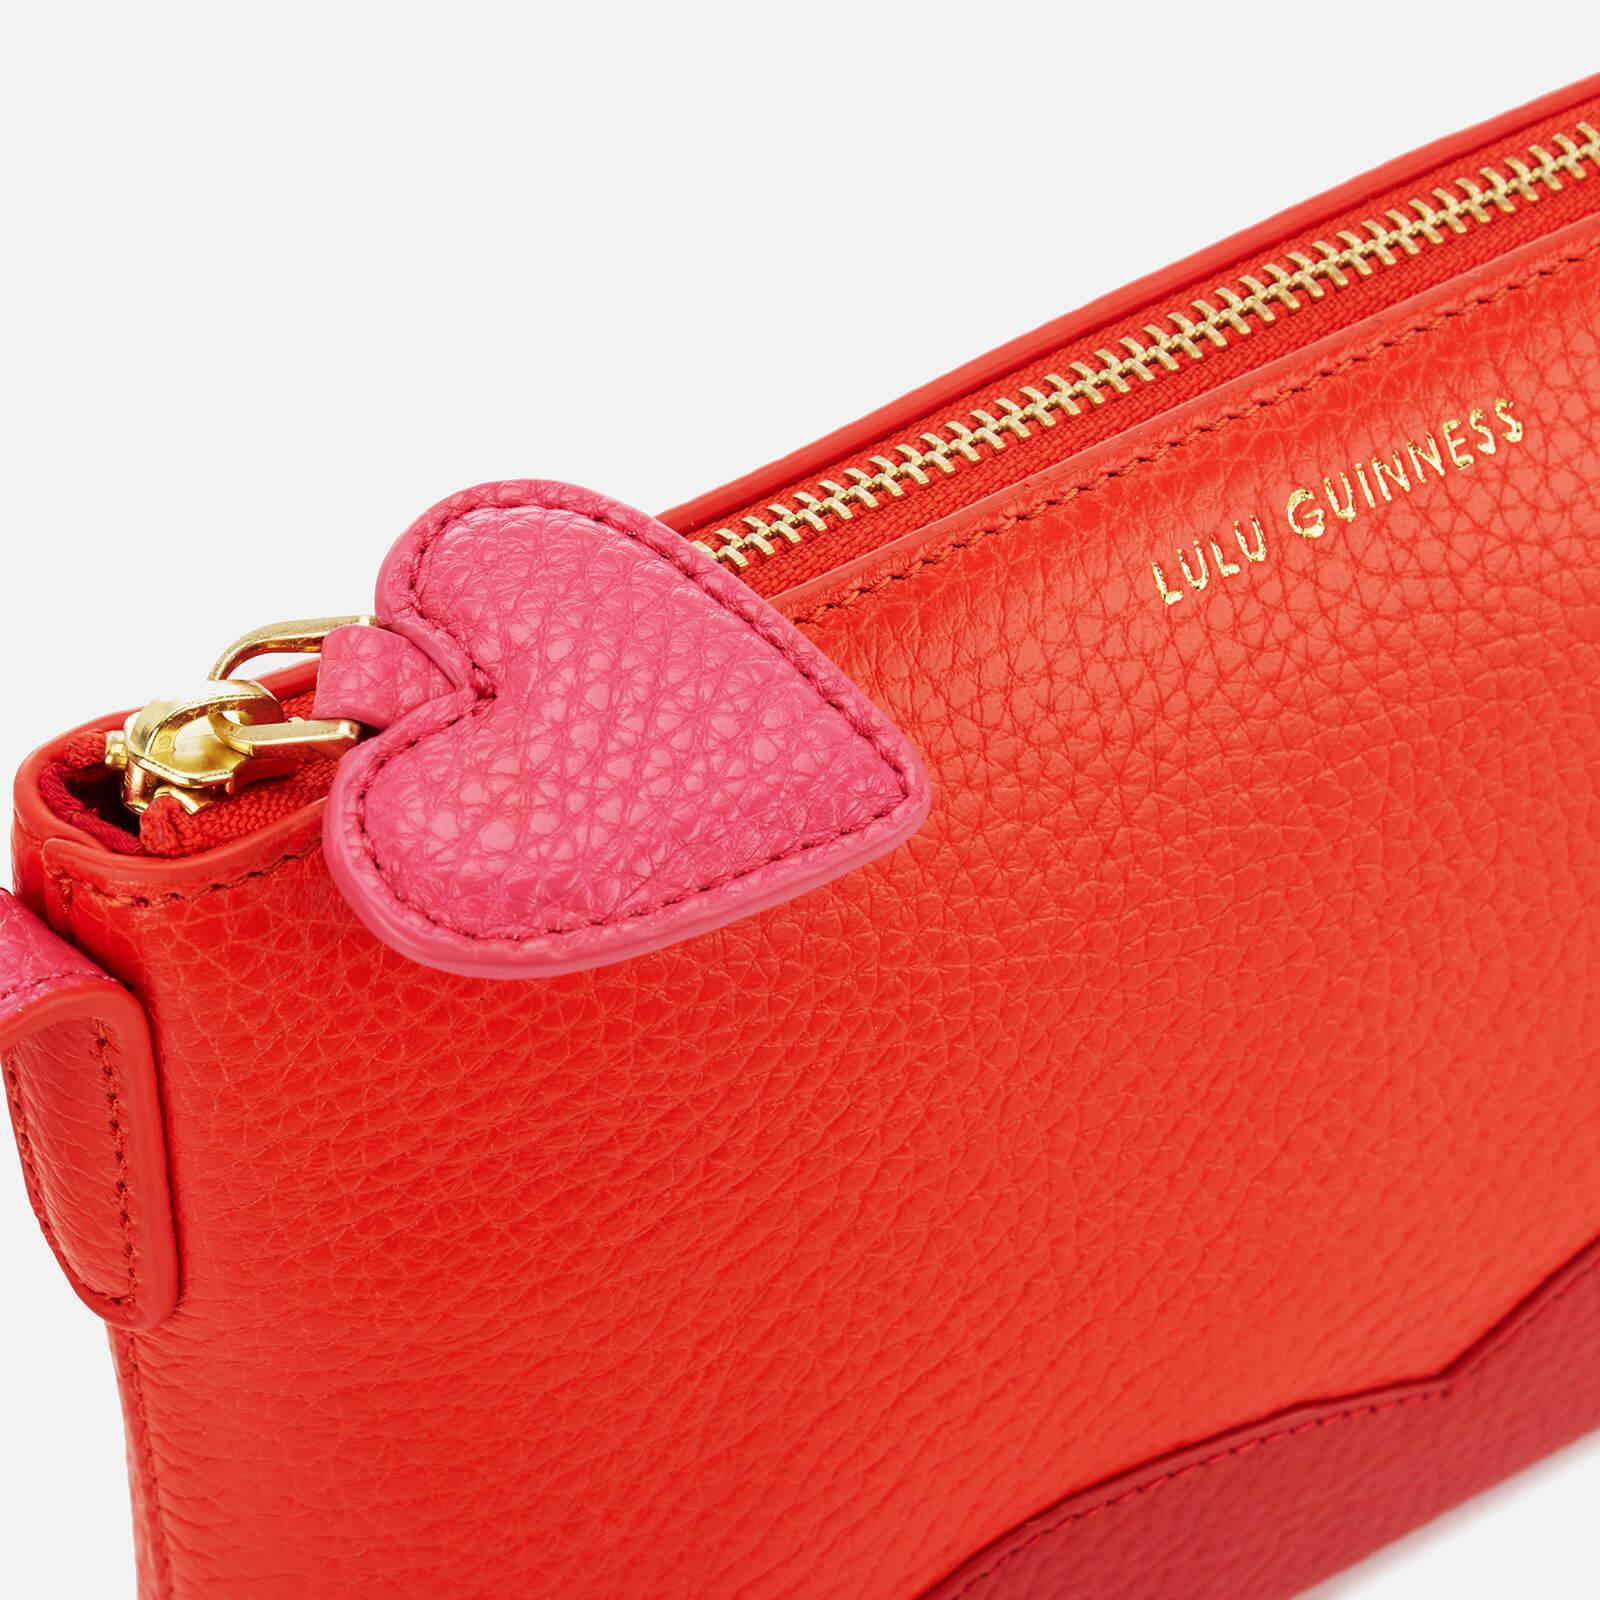 Lulu Guinness Leather Hearts And Lips Marie Cross Body Bag in Red